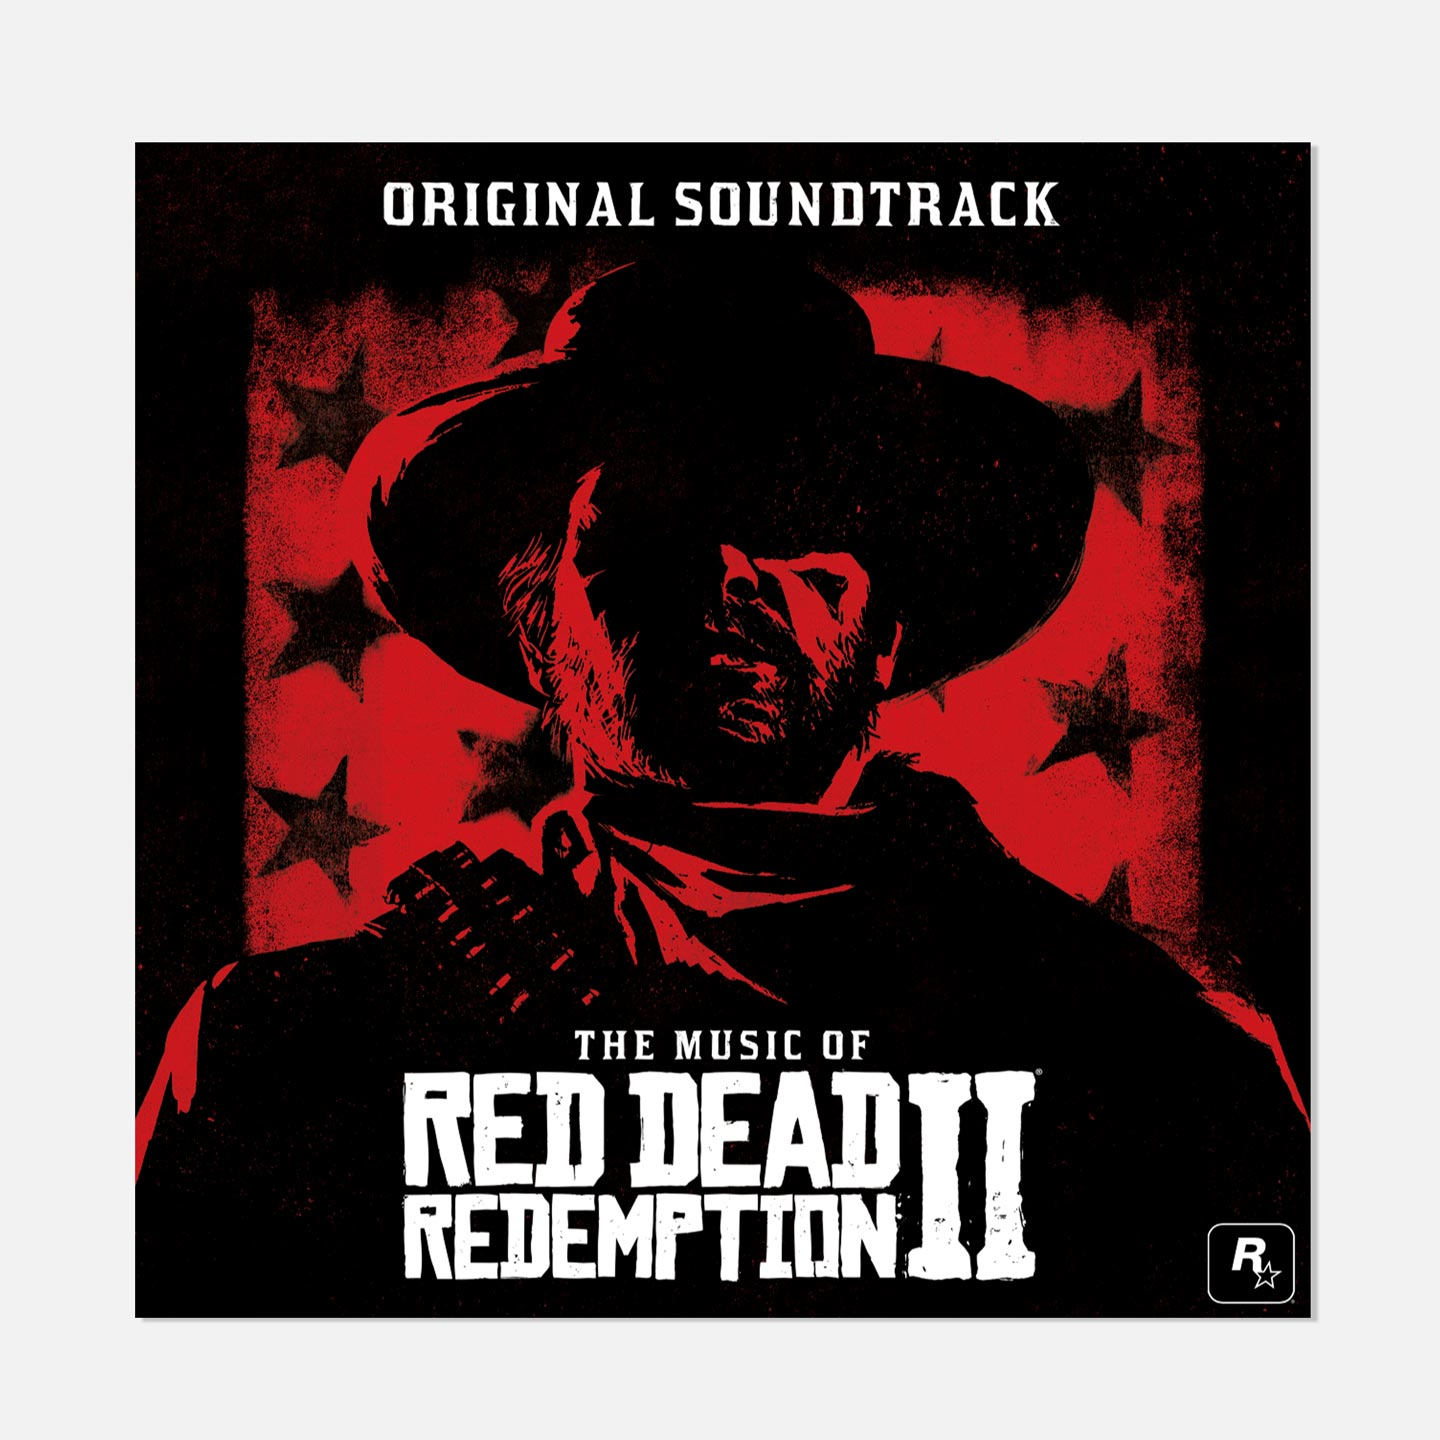 Album The Music of Red Dead Redemption 2: Original Soundtrack